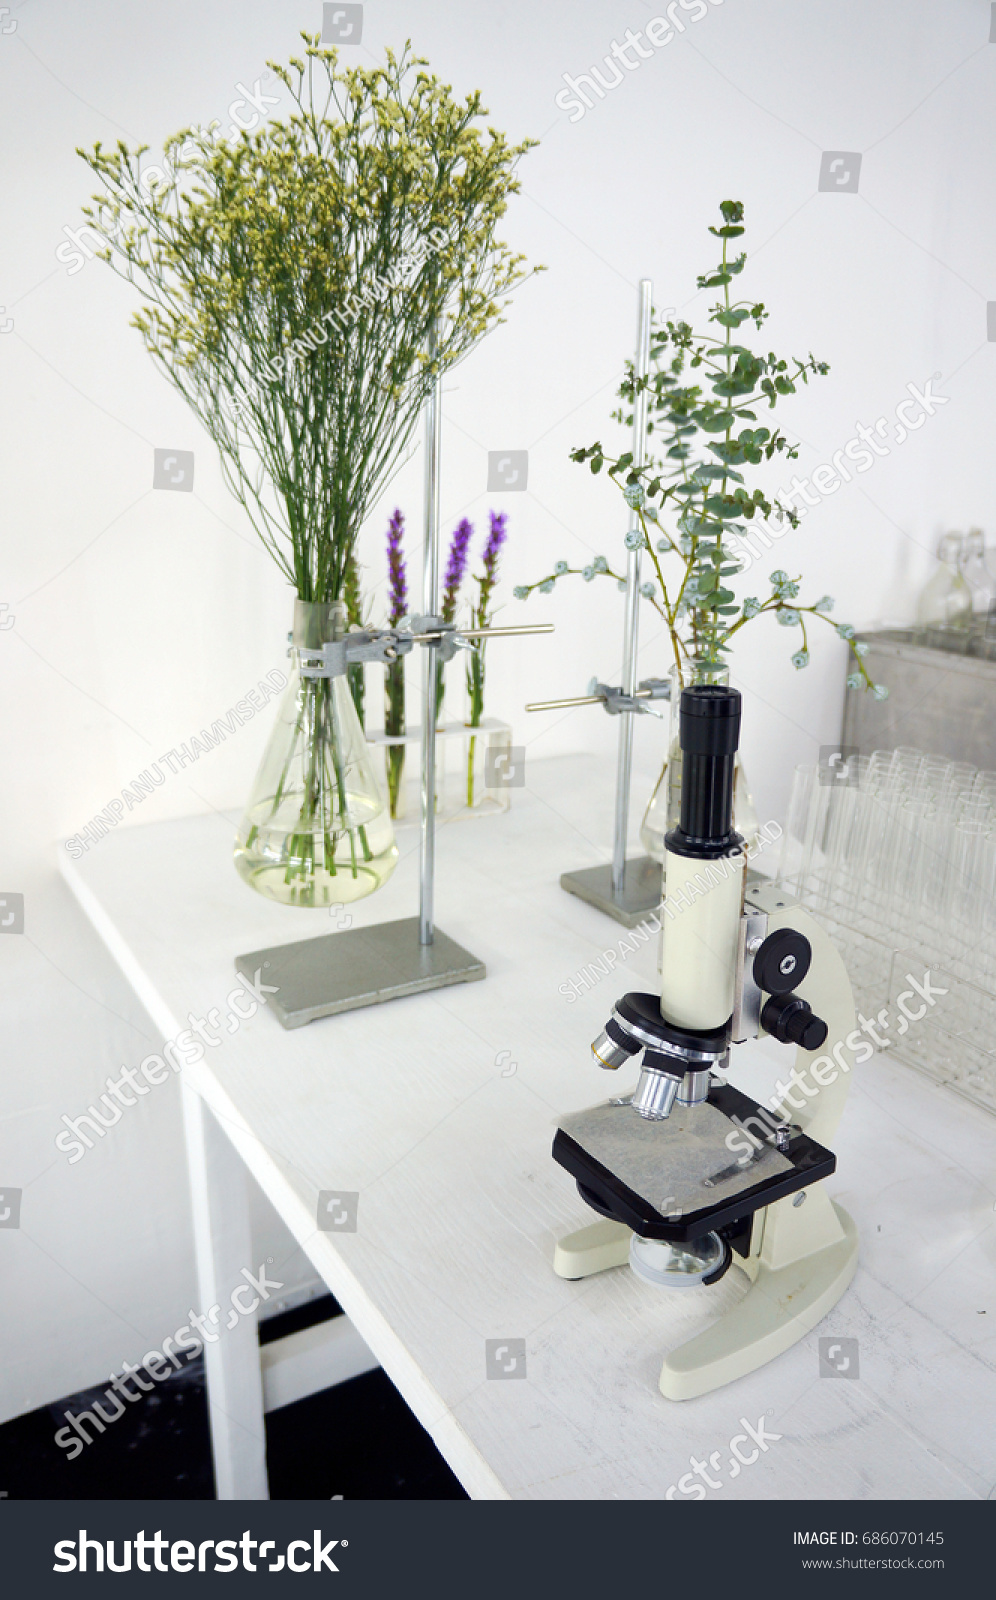 Experiment Plant Tissue Culture Laboratory Stock Photo Royalty Free